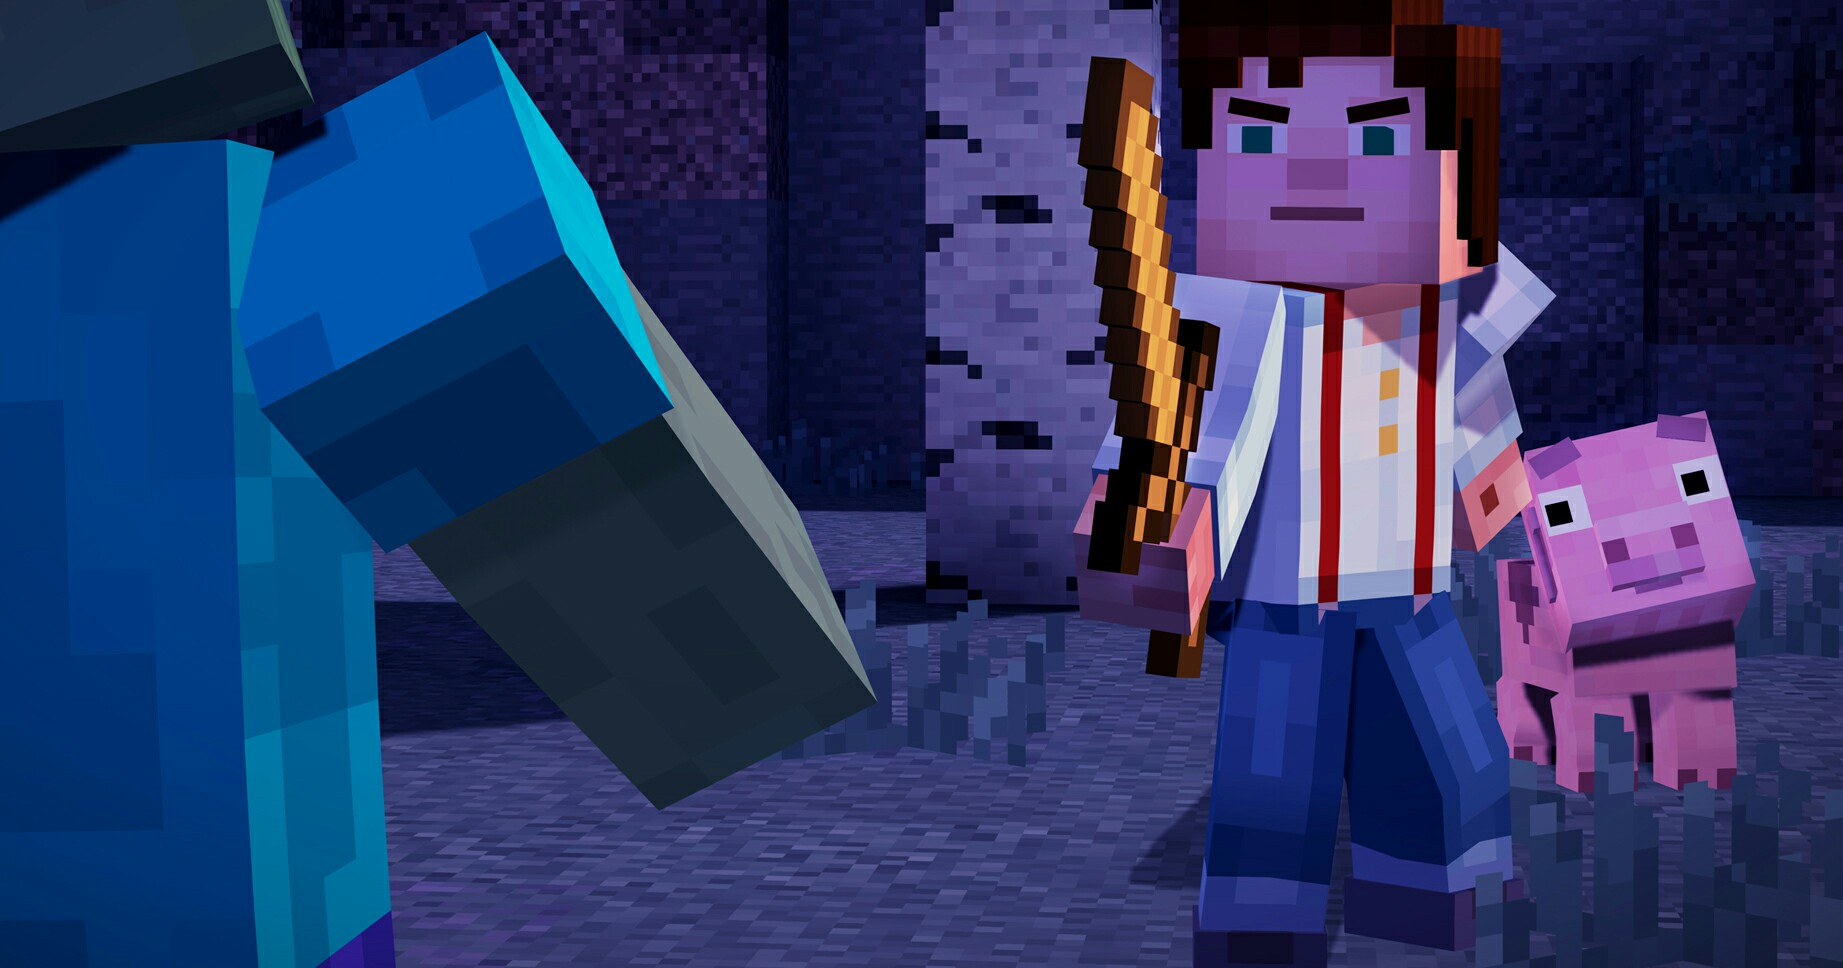 Minecraft Story Mode Episode 8 game preview, download FitGirl Minecraft Story Mode Episode 8 game, download Minecraft Story Mode Episode 8, download Minecraft Story Mode Episode 8 RELOADED, download Minecraft Story Mode Episode 8 game, download adventure game 2016, download compressed version  Minecraft Story Mode Episode 8, Direct link to Minecraft Story Mode Episode 8 game, Minecraft Story Mode Episode 8 game review